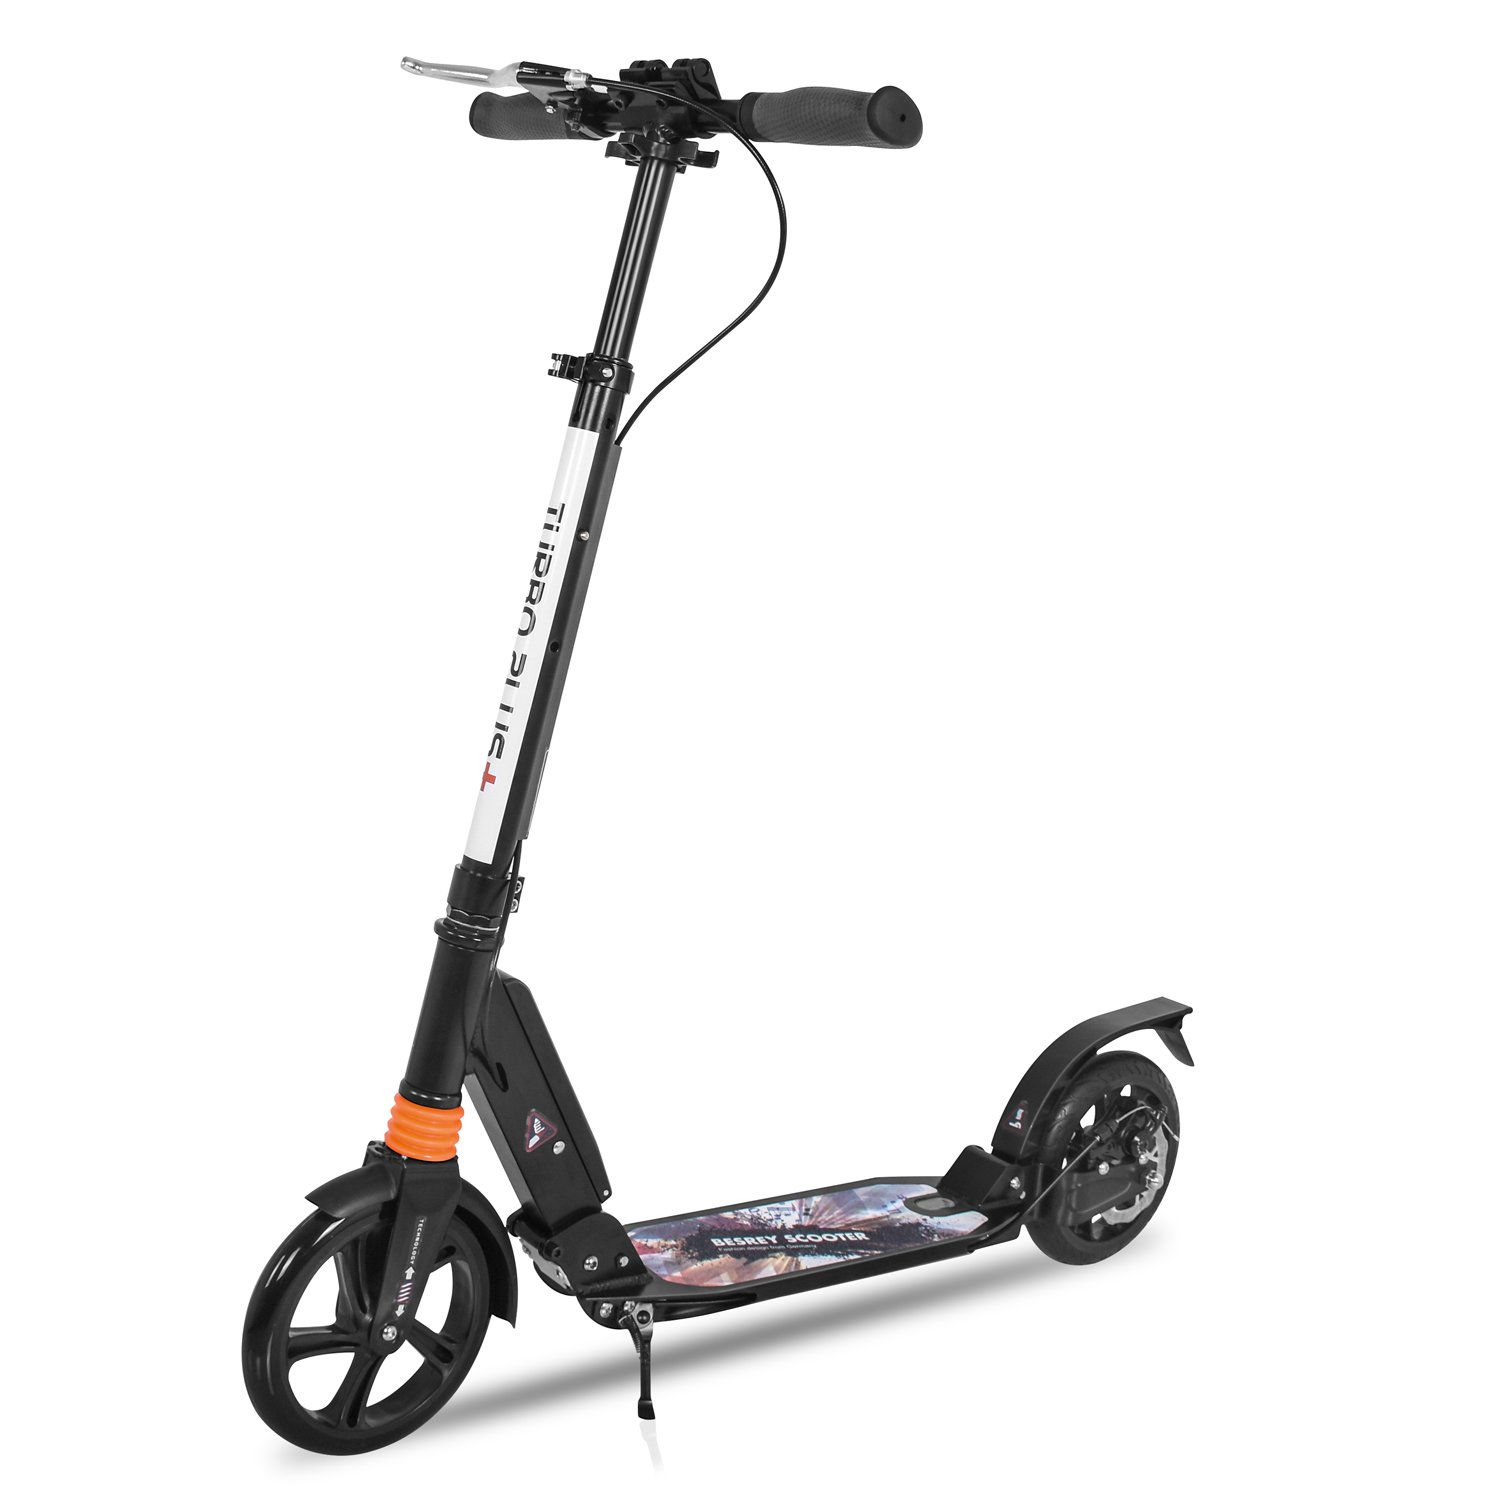 besrey Kick Scooter One Key Folding Big Wheel Scooter with Disc Brake Dual Shock Absorption System for Adult and Teens